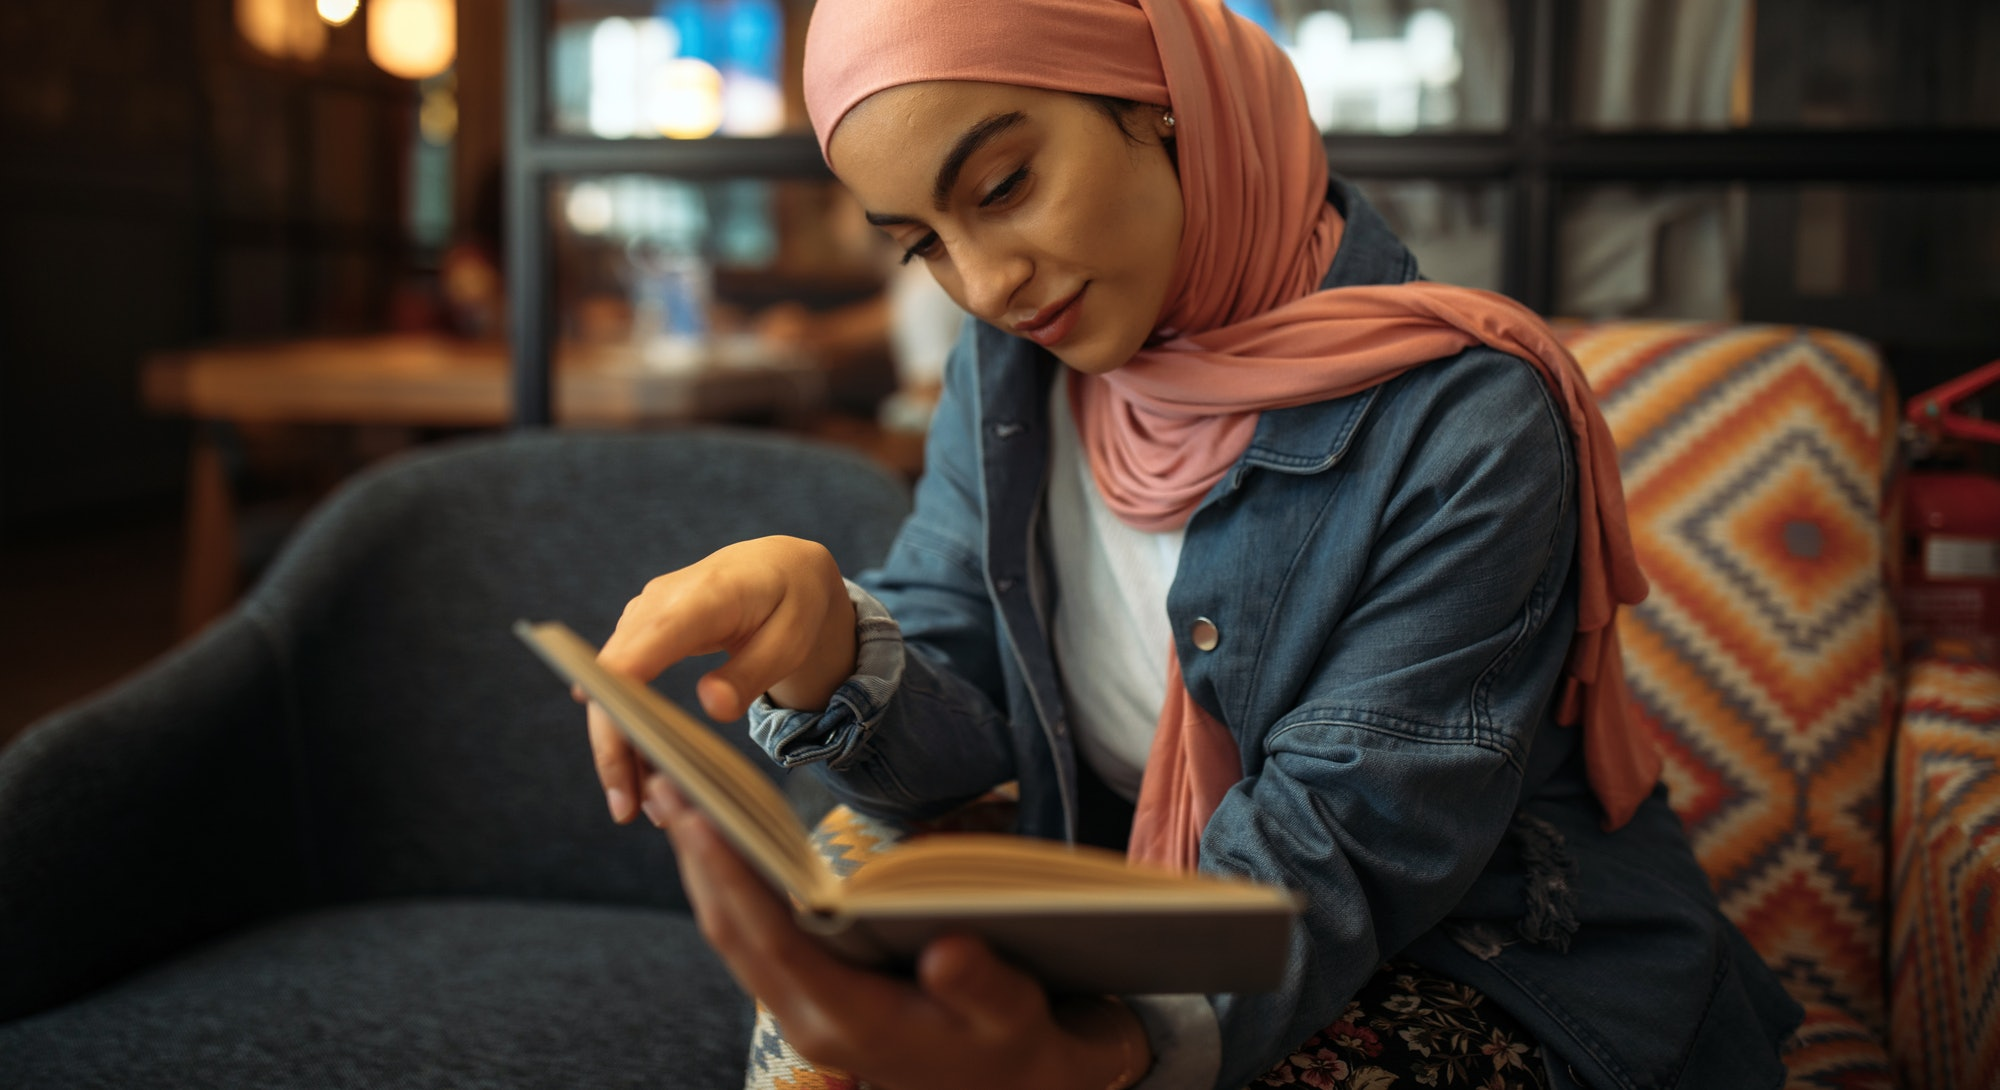 Young muslim woman in hijab reading book at cafe